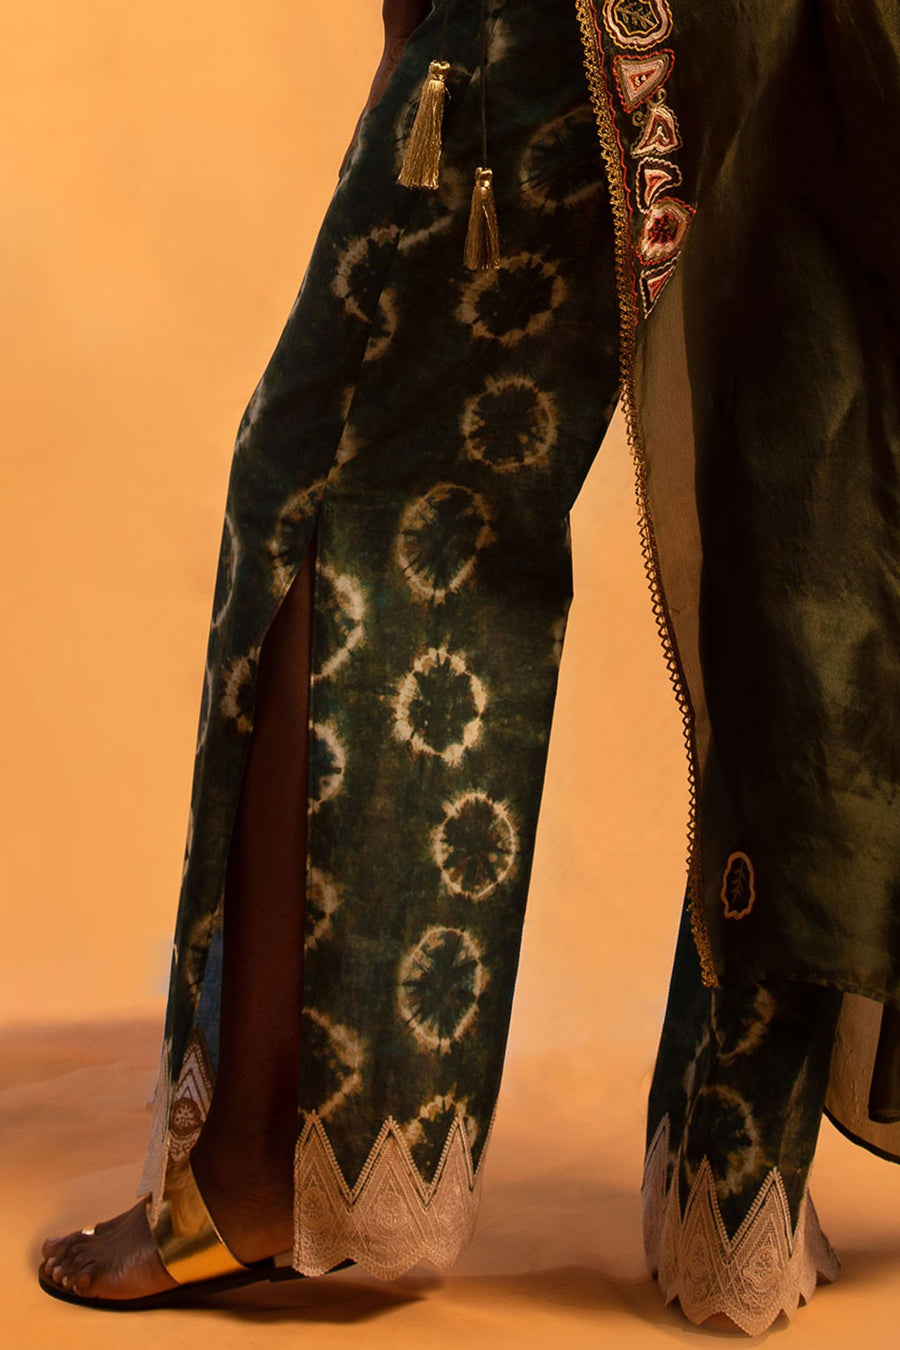 This is a detail photo of the side slit on a pair of tie-dye inspired shibori printed pants. The hemline of the pant is a natural colored lace embroidery.